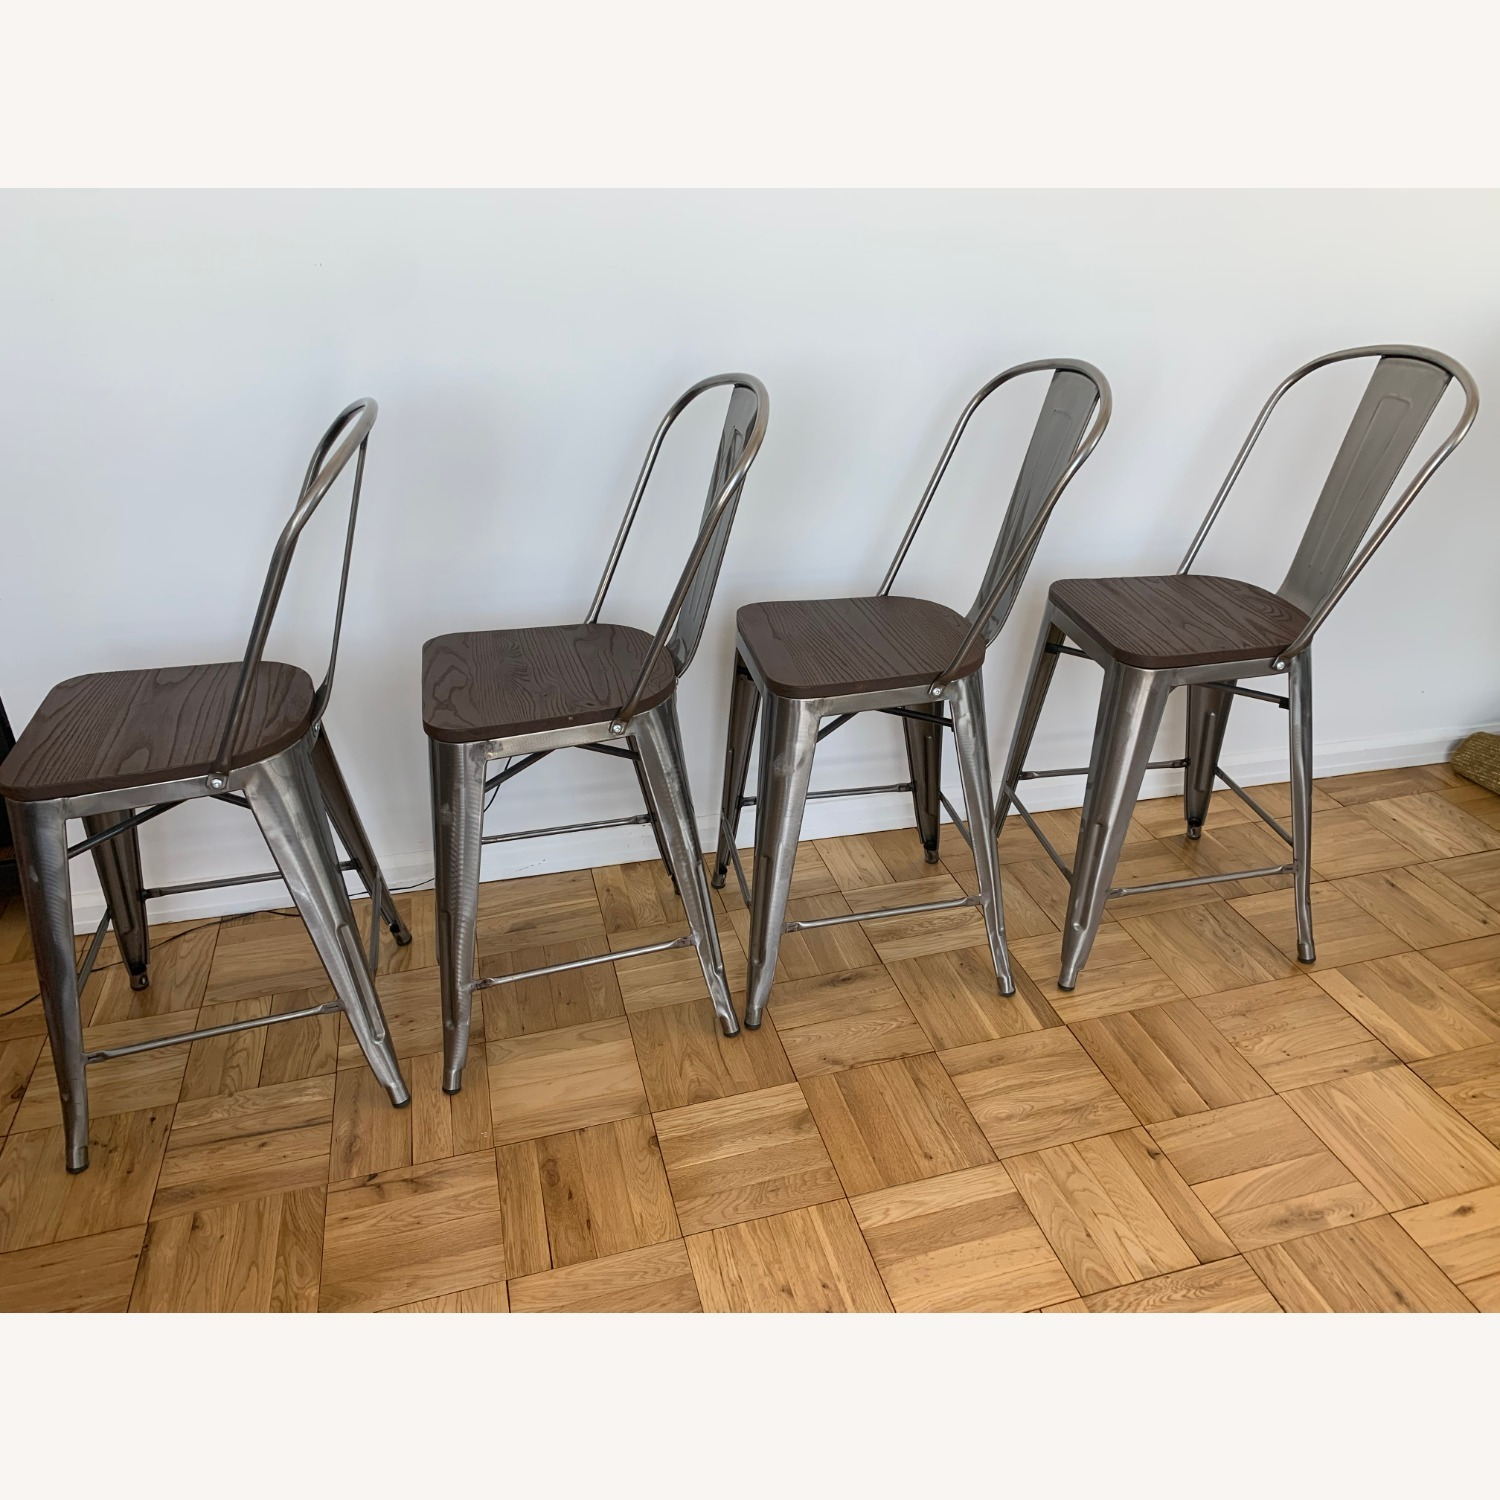 Il Loft Chairs for Counter Table - image-2